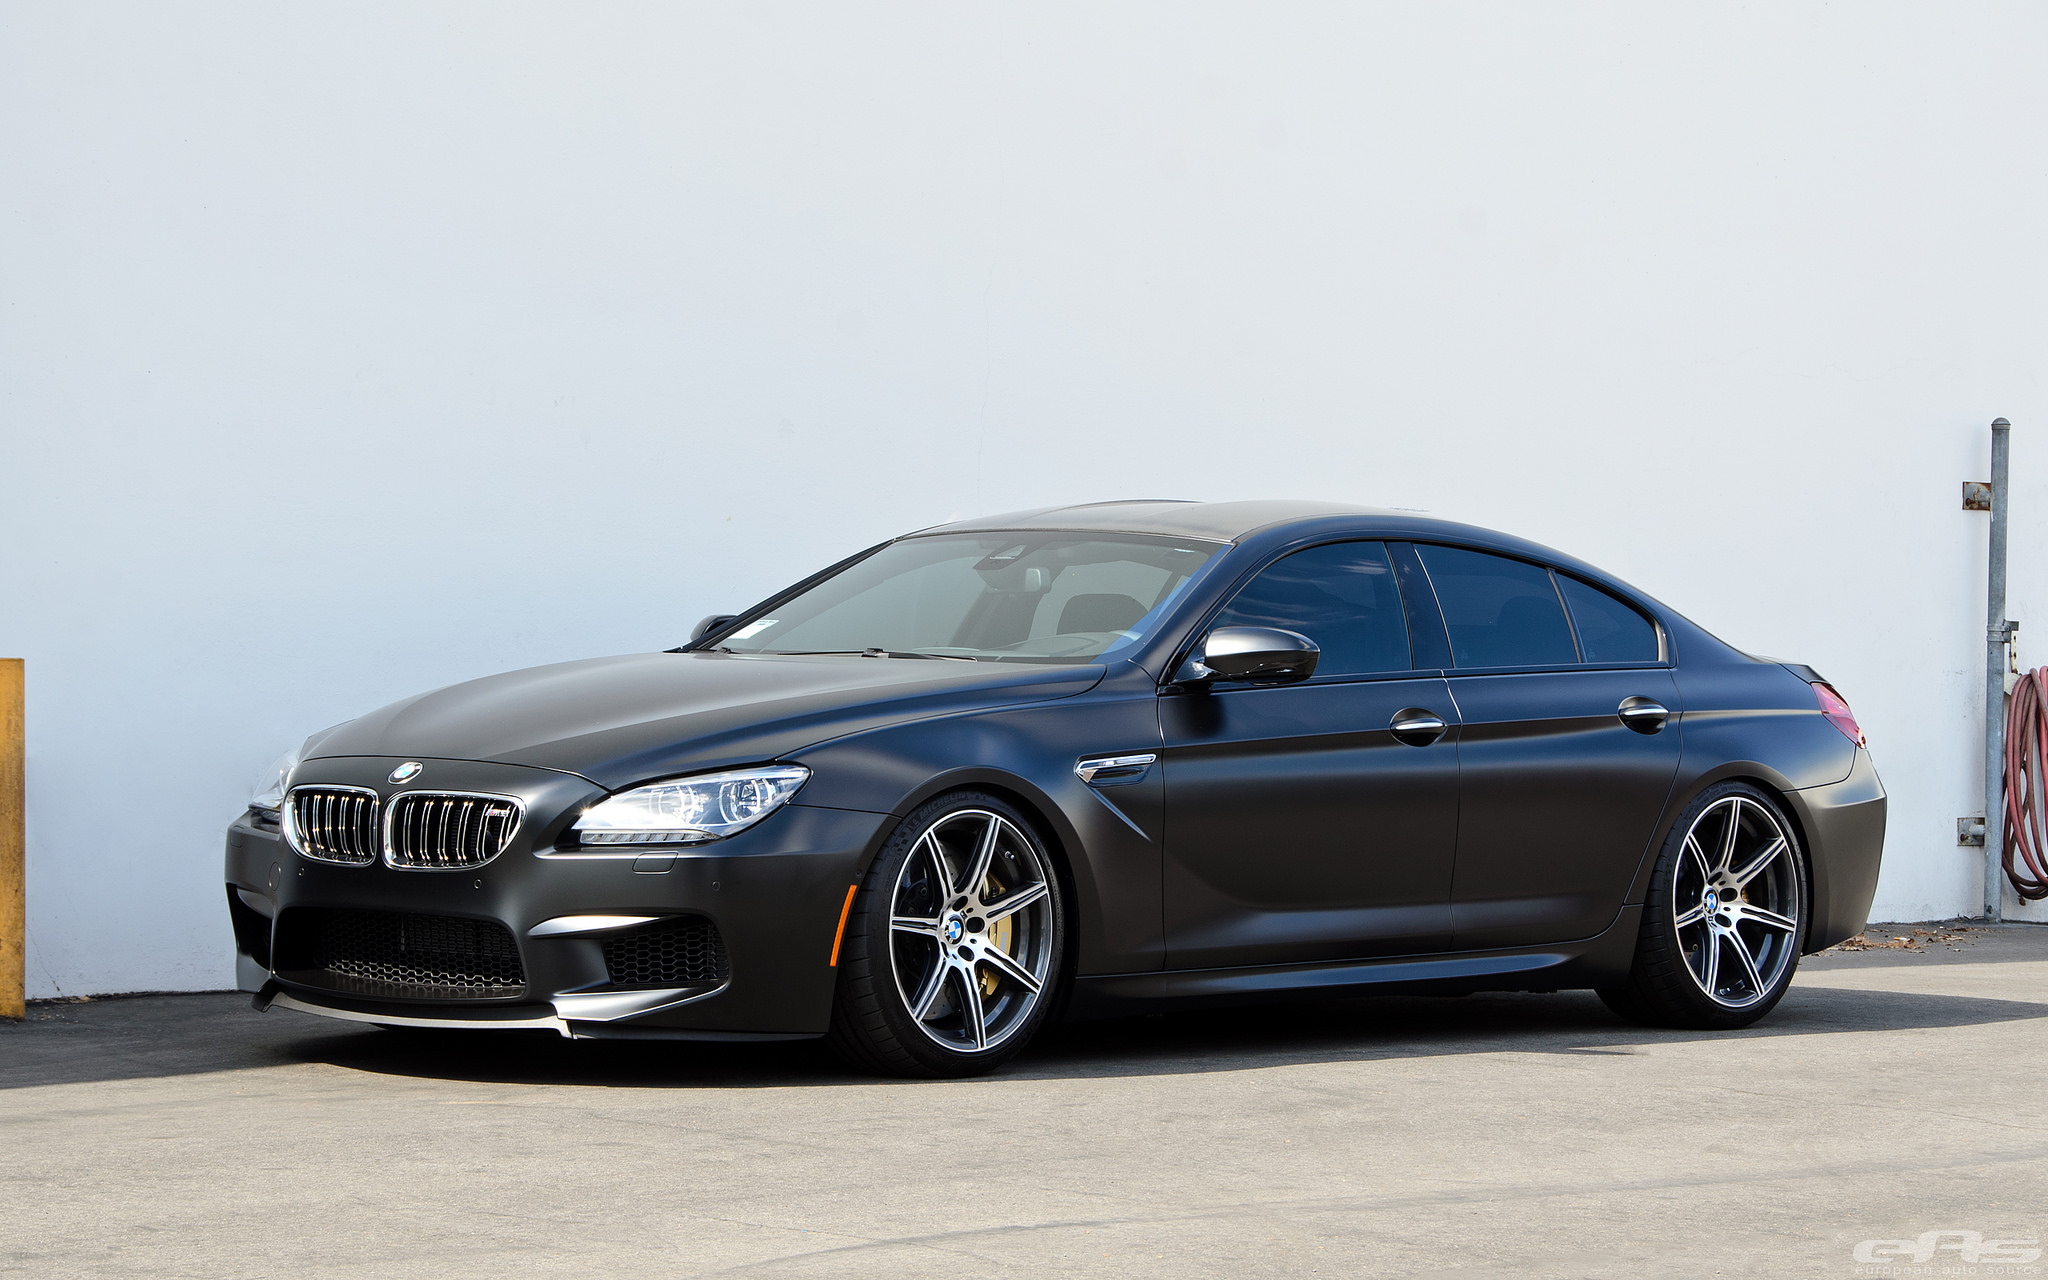 BMW M6 Gran Coupe Photo: pinterest